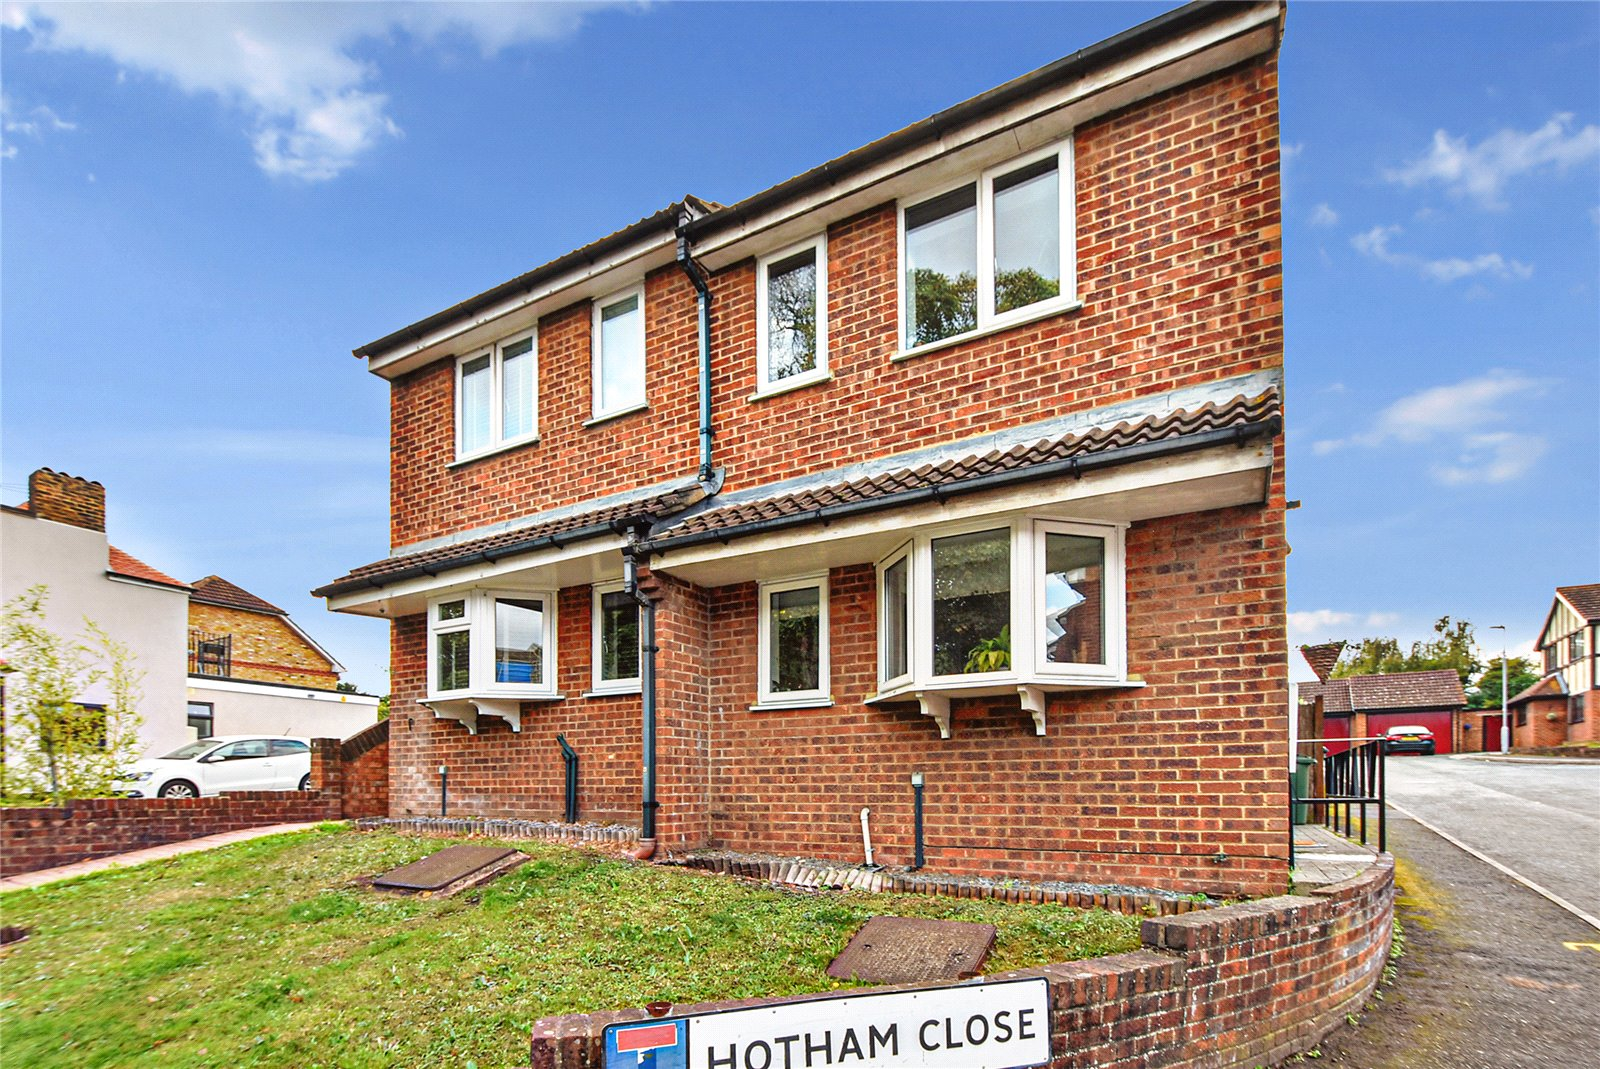 Hotham Close, Sutton At Hone, Dartford, Kent, DA4